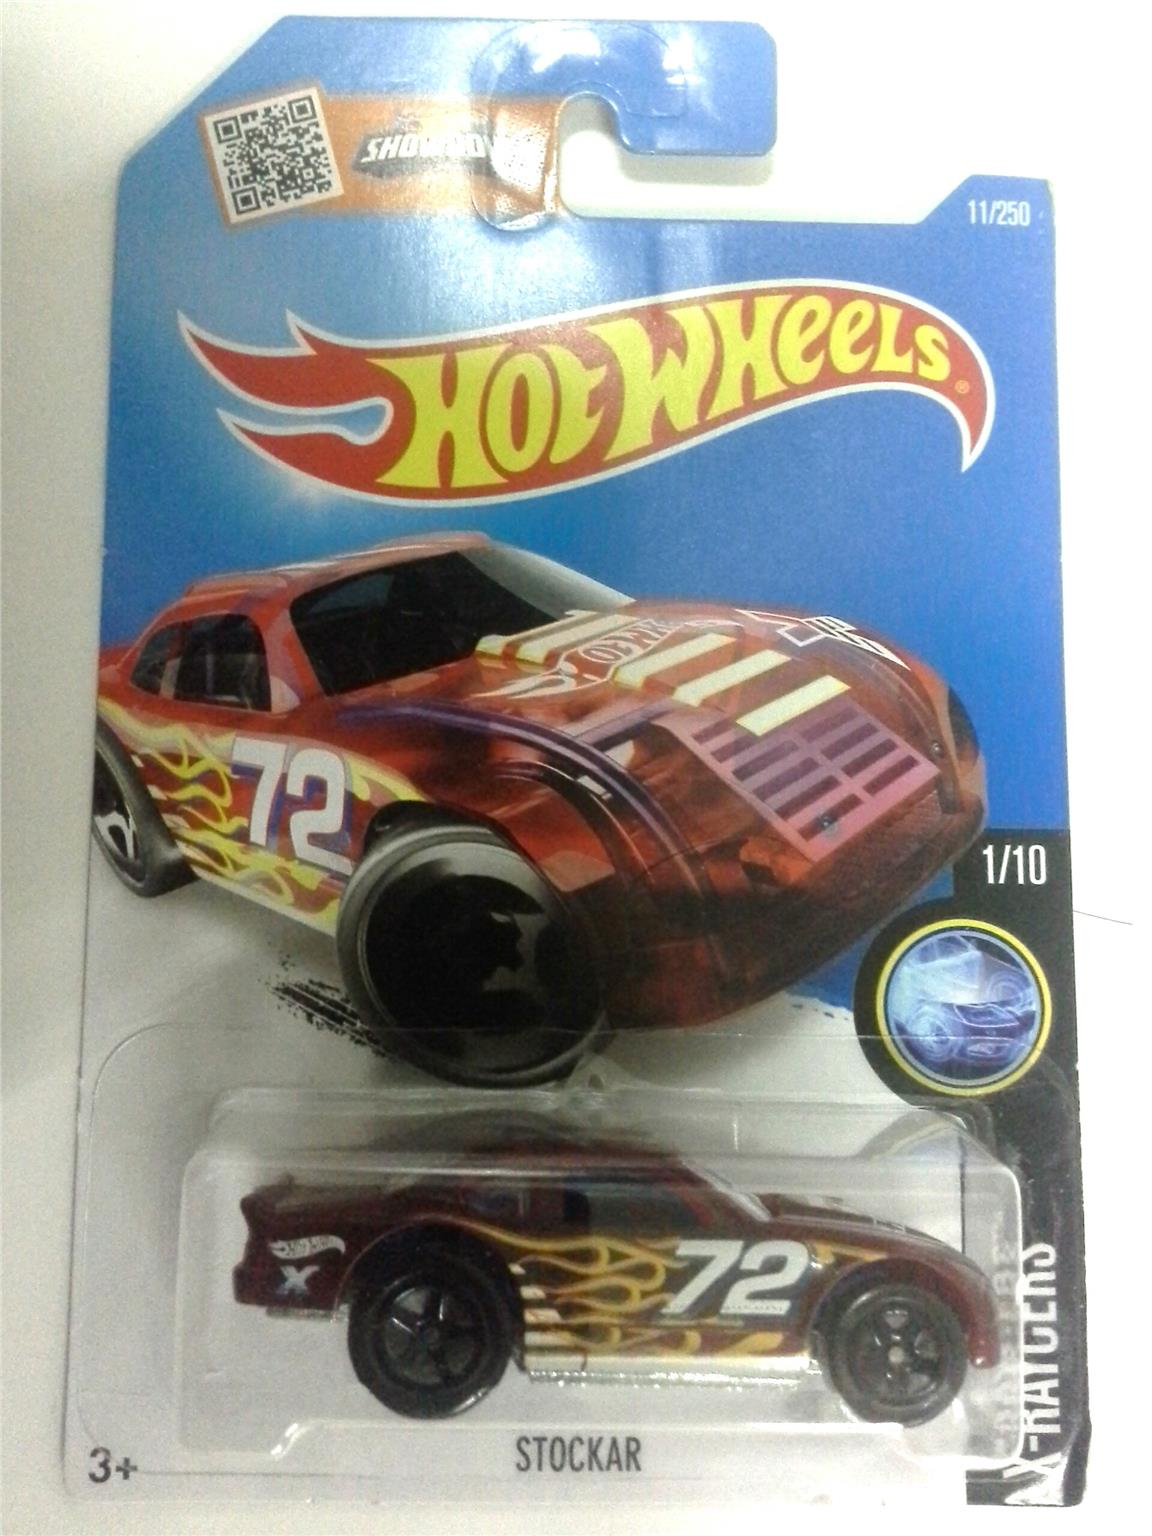 2016 Hot Wheels STOCKAR TRANSPARENT RED